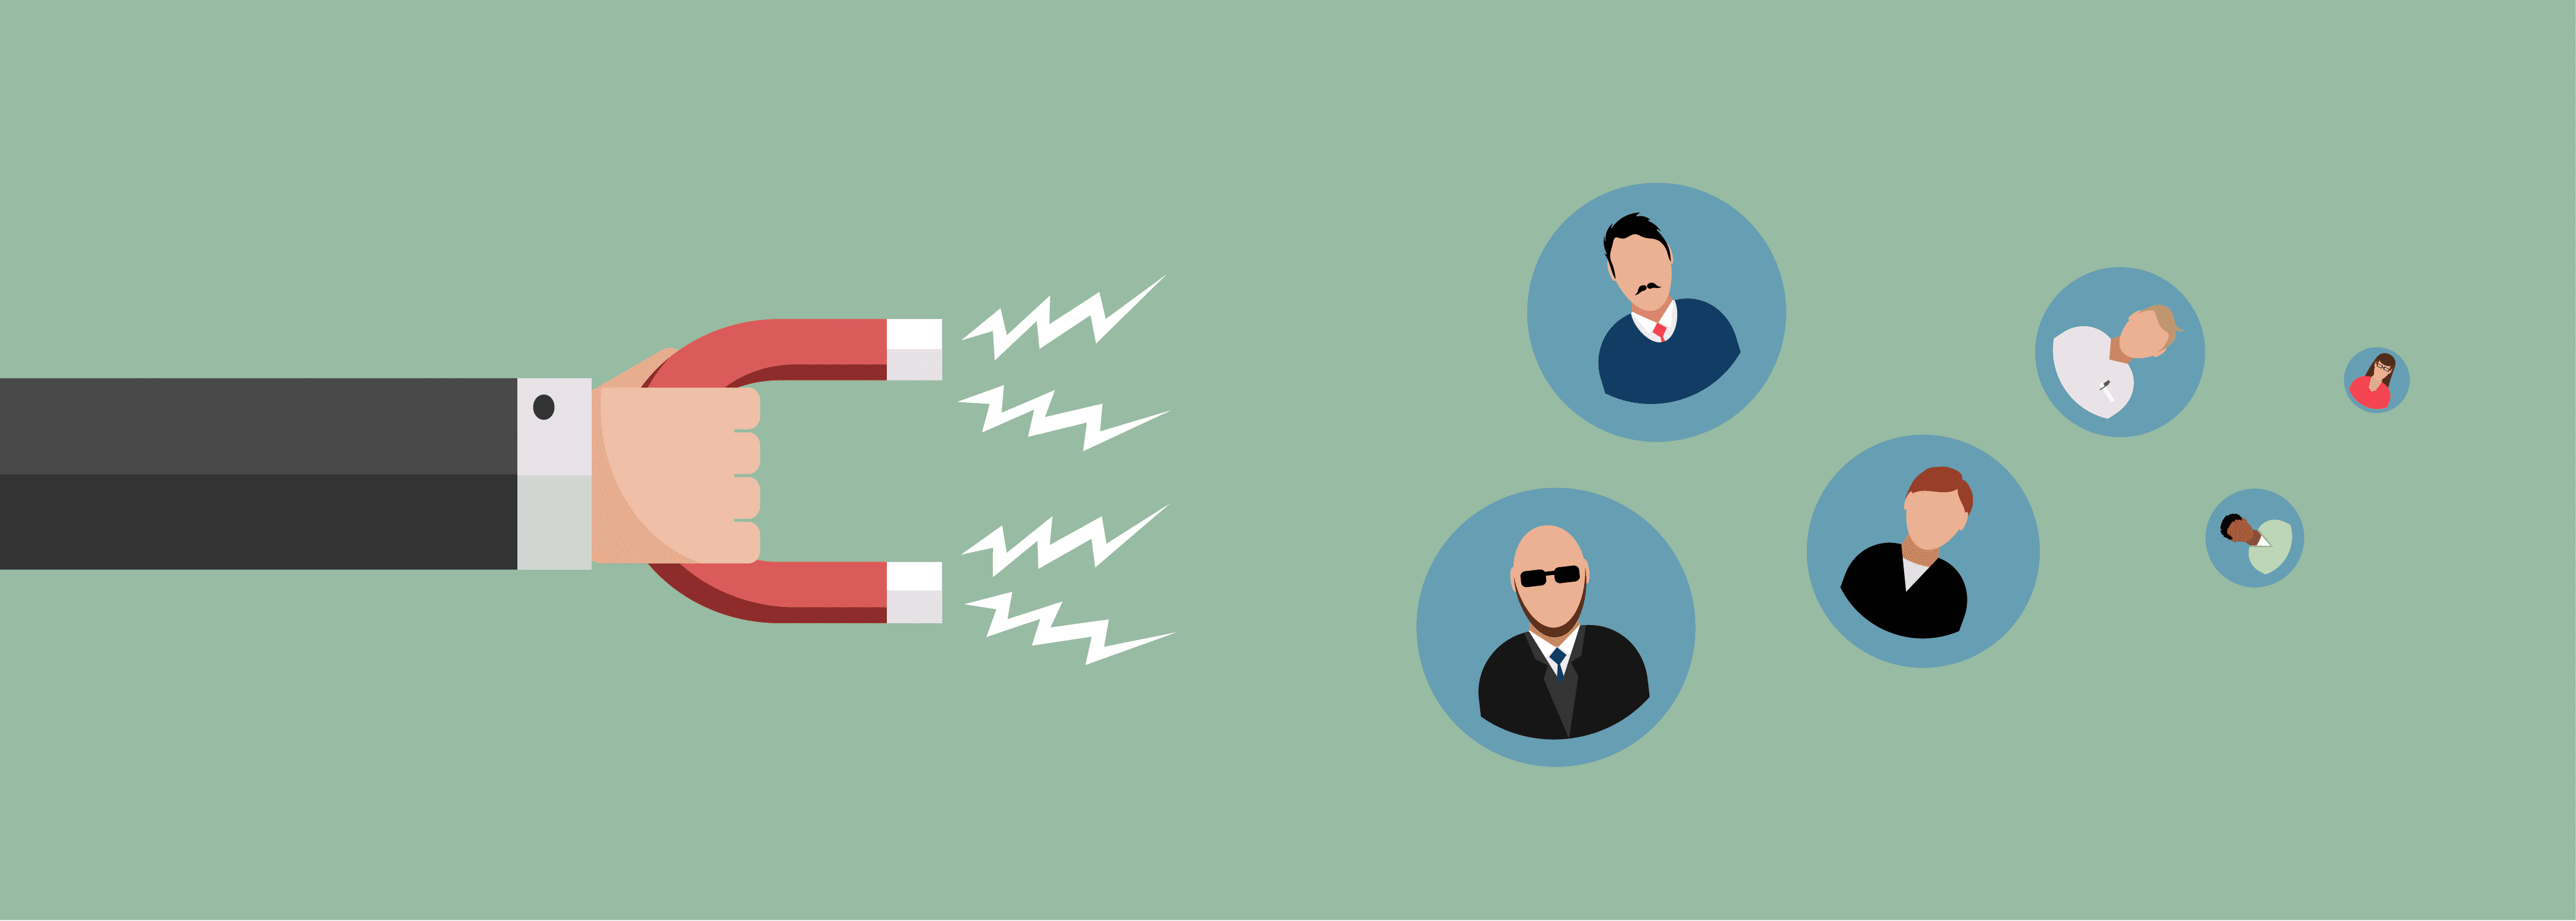 Customer Retention Strategies with magnet